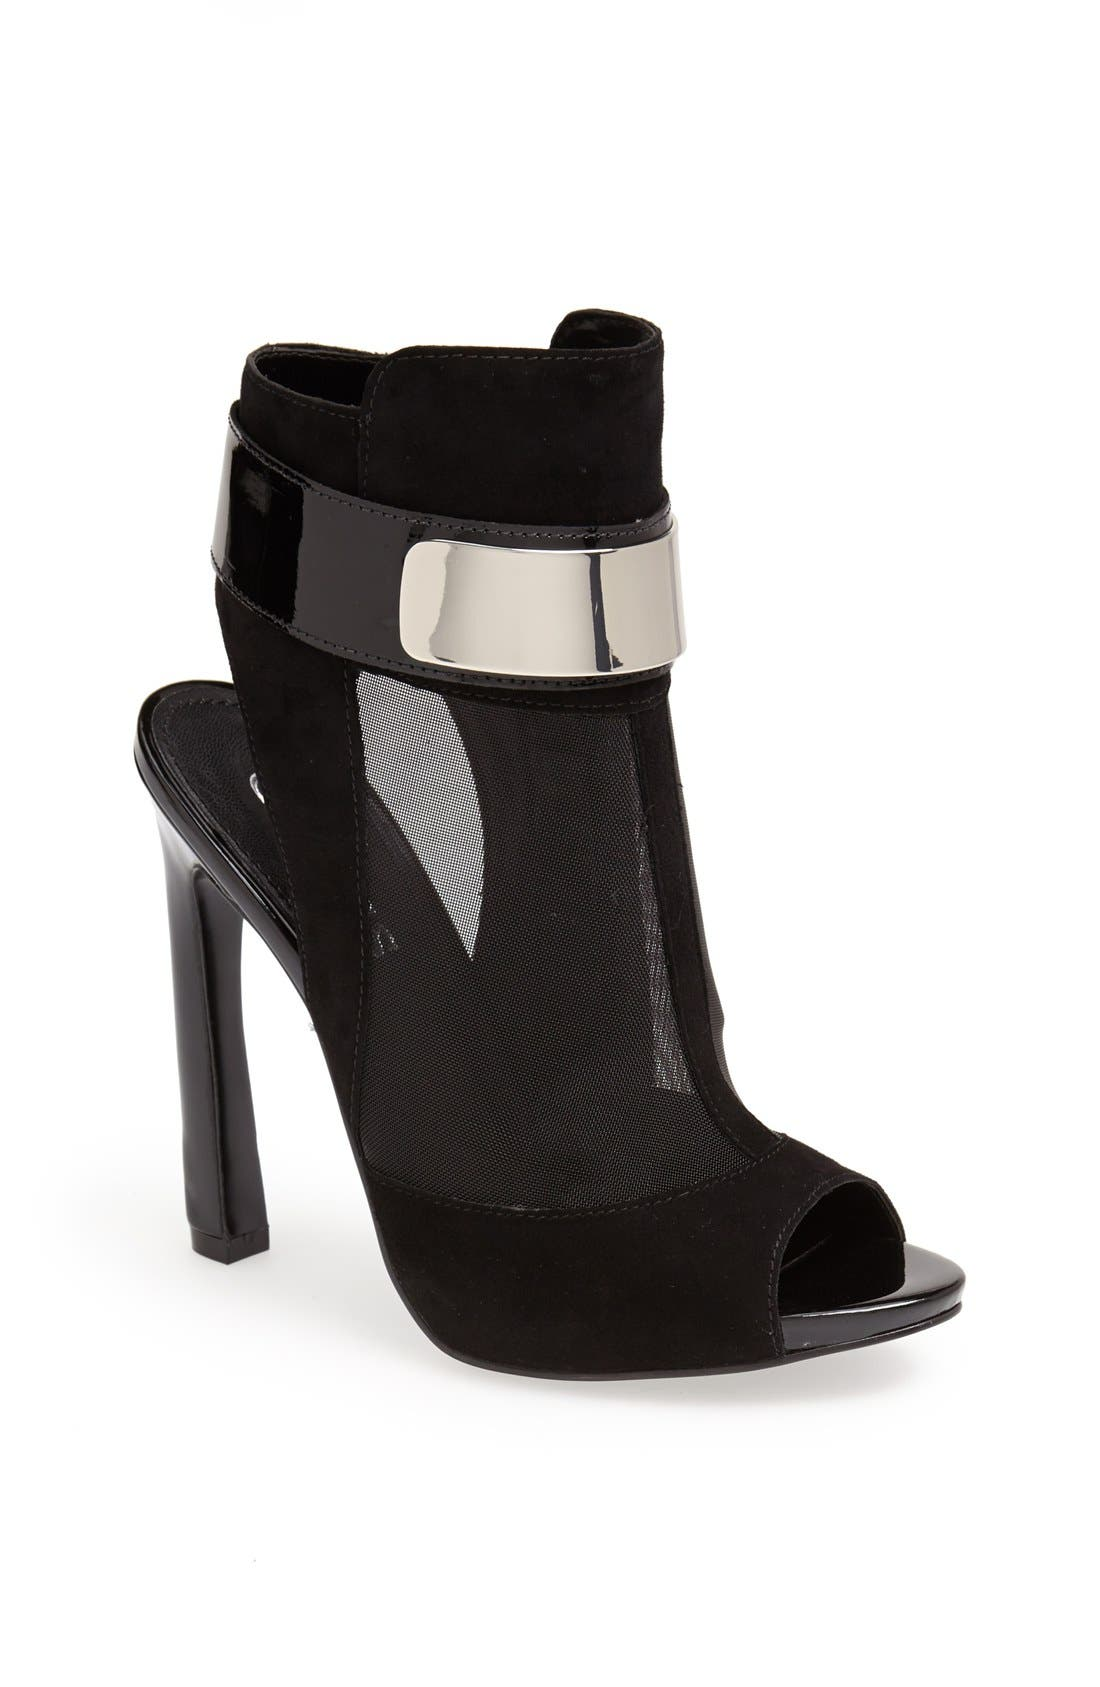 Alternate Image 1 Selected - GUESS 'Anavey' Suede & Mesh Peep Toe Bootie